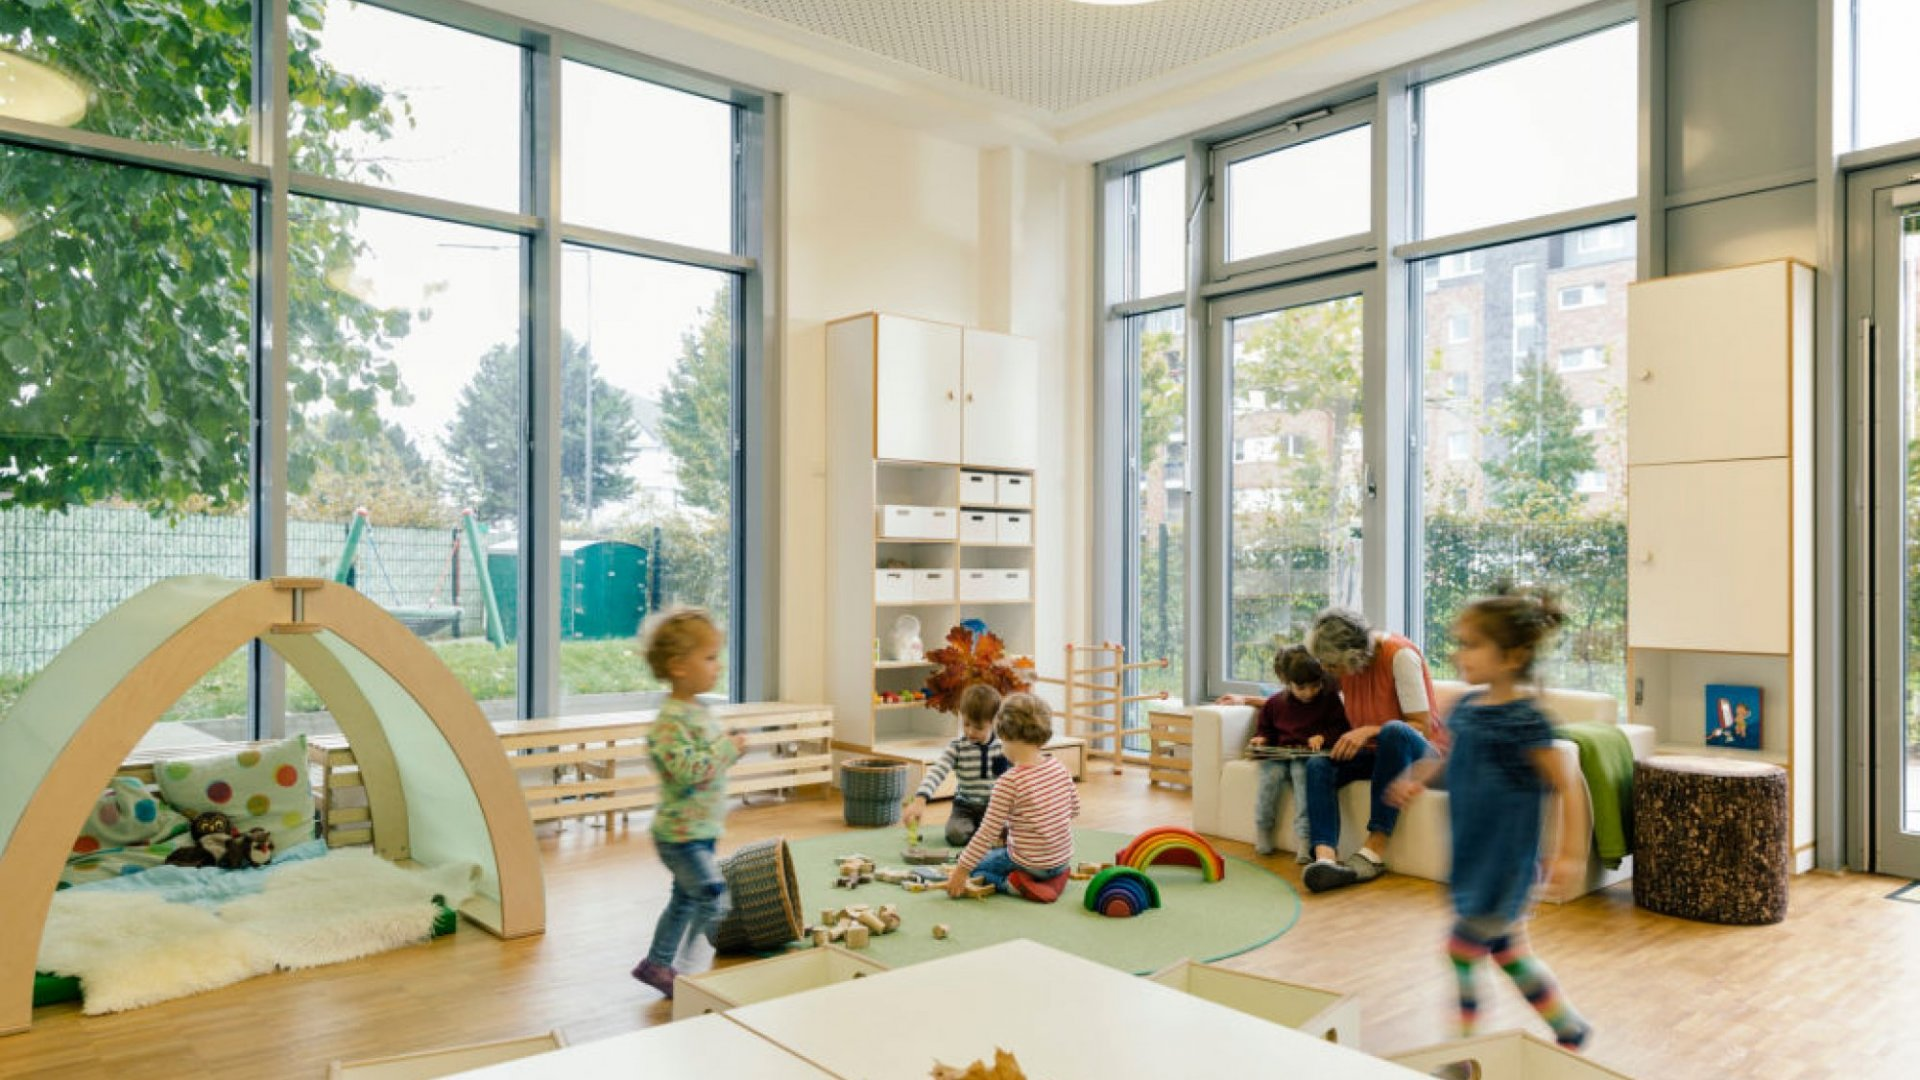 It's About Time: Valuing Child Care in a Post-Pandemic World